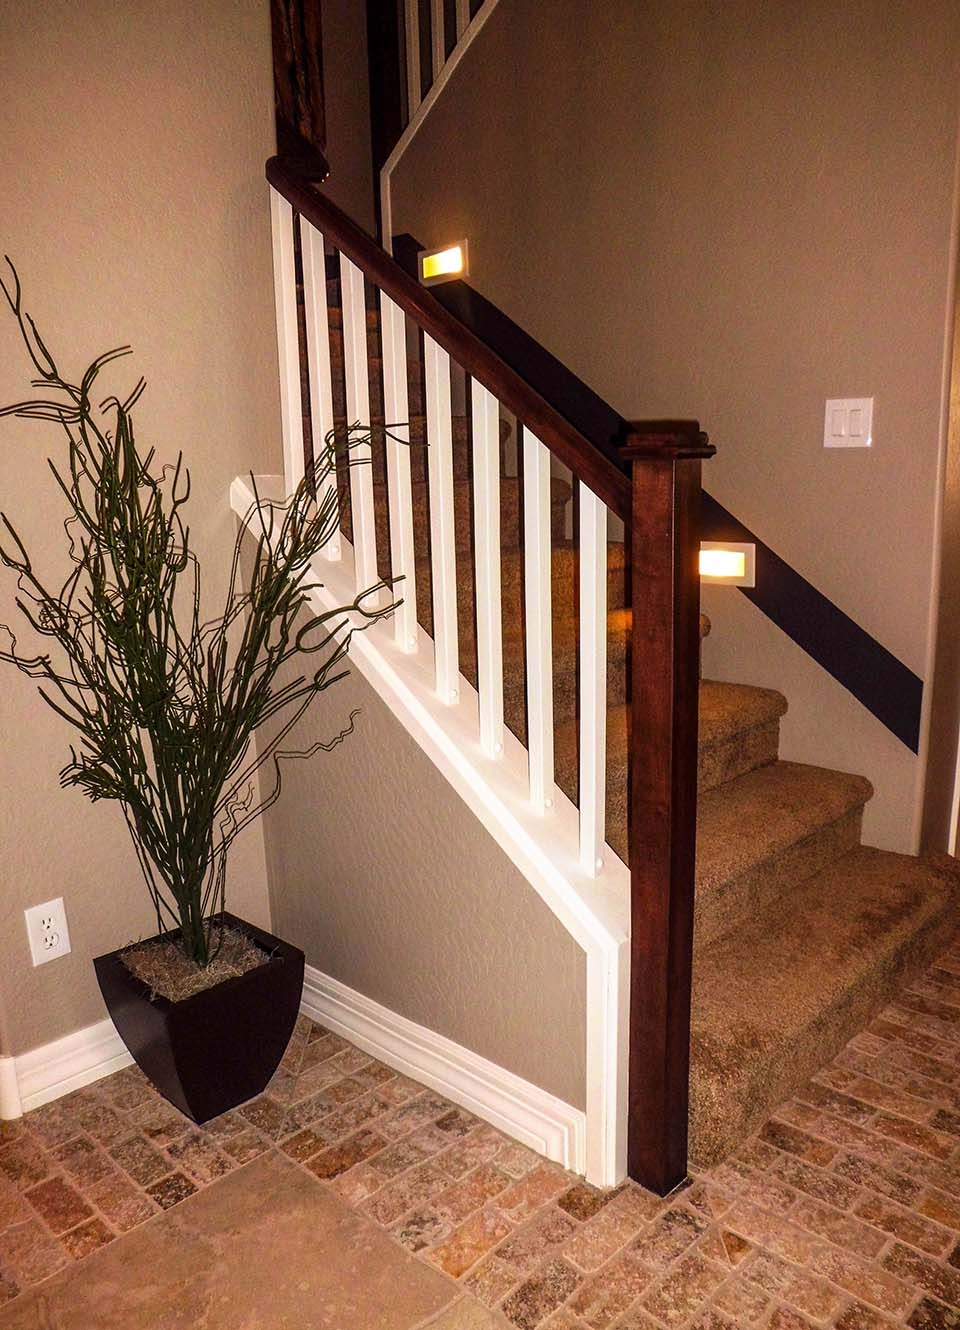 Mission Style Staircase Southern Staircase Artistic Stairs | Wood And Metal Stair Railing | Outdoor | Modern | Newel Post | Basement | Contemporary